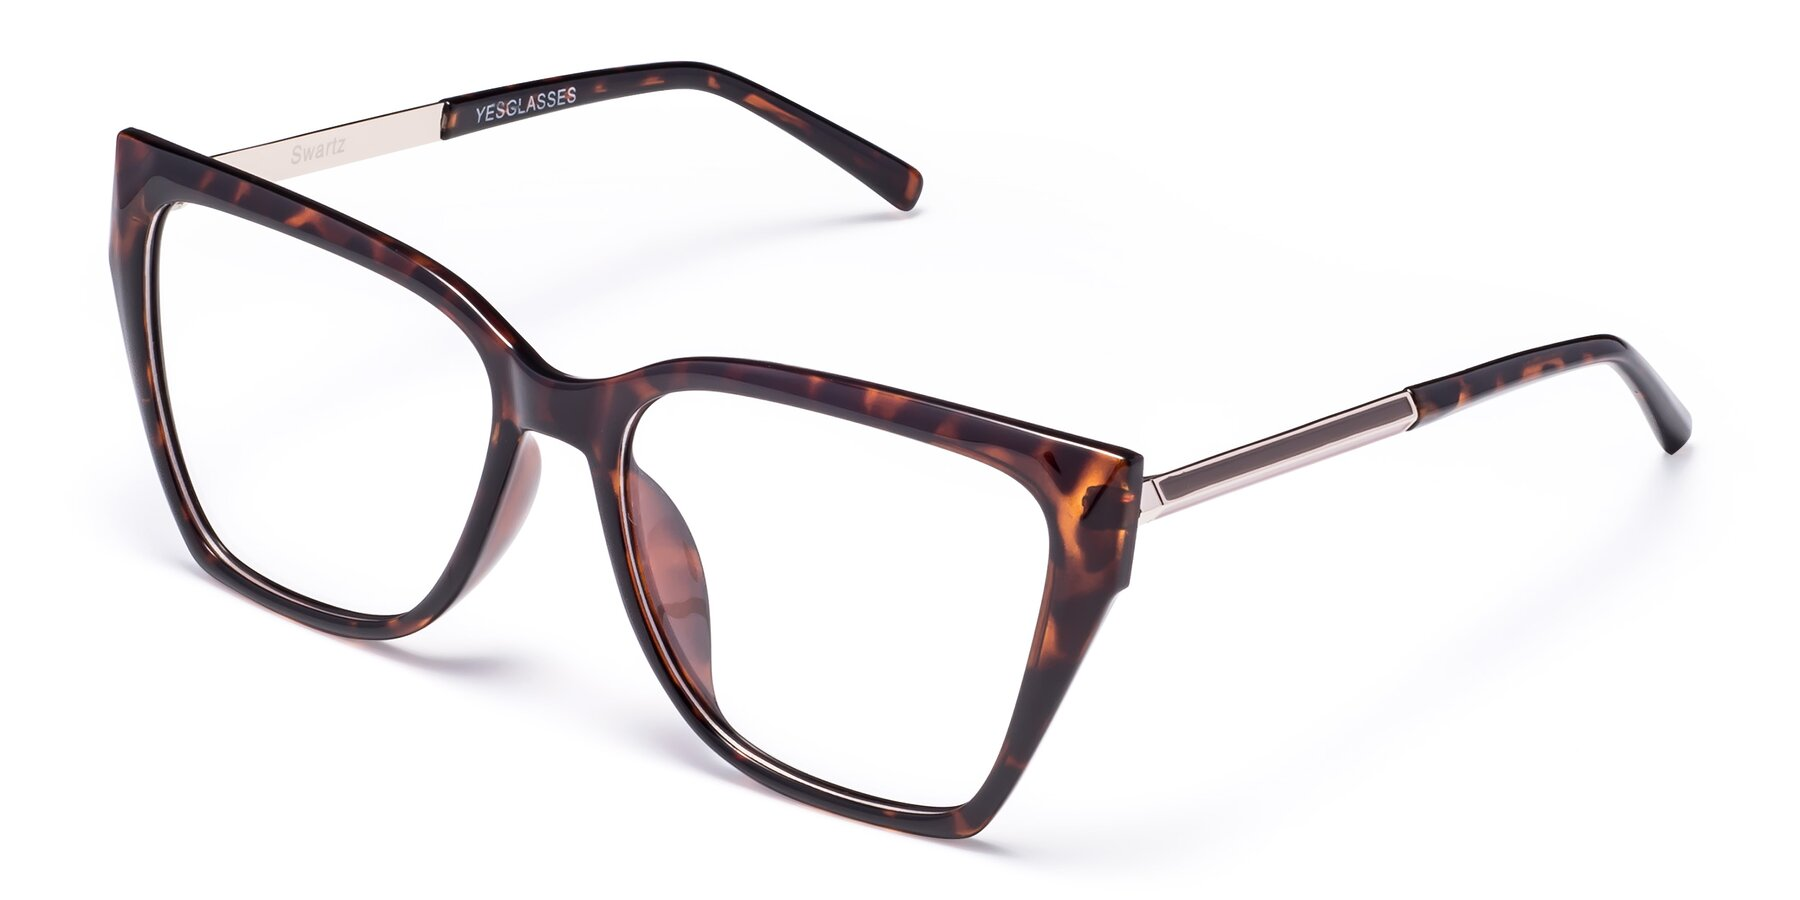 Angle of Swartz in Tortoise with Clear Blue Light Blocking Lenses